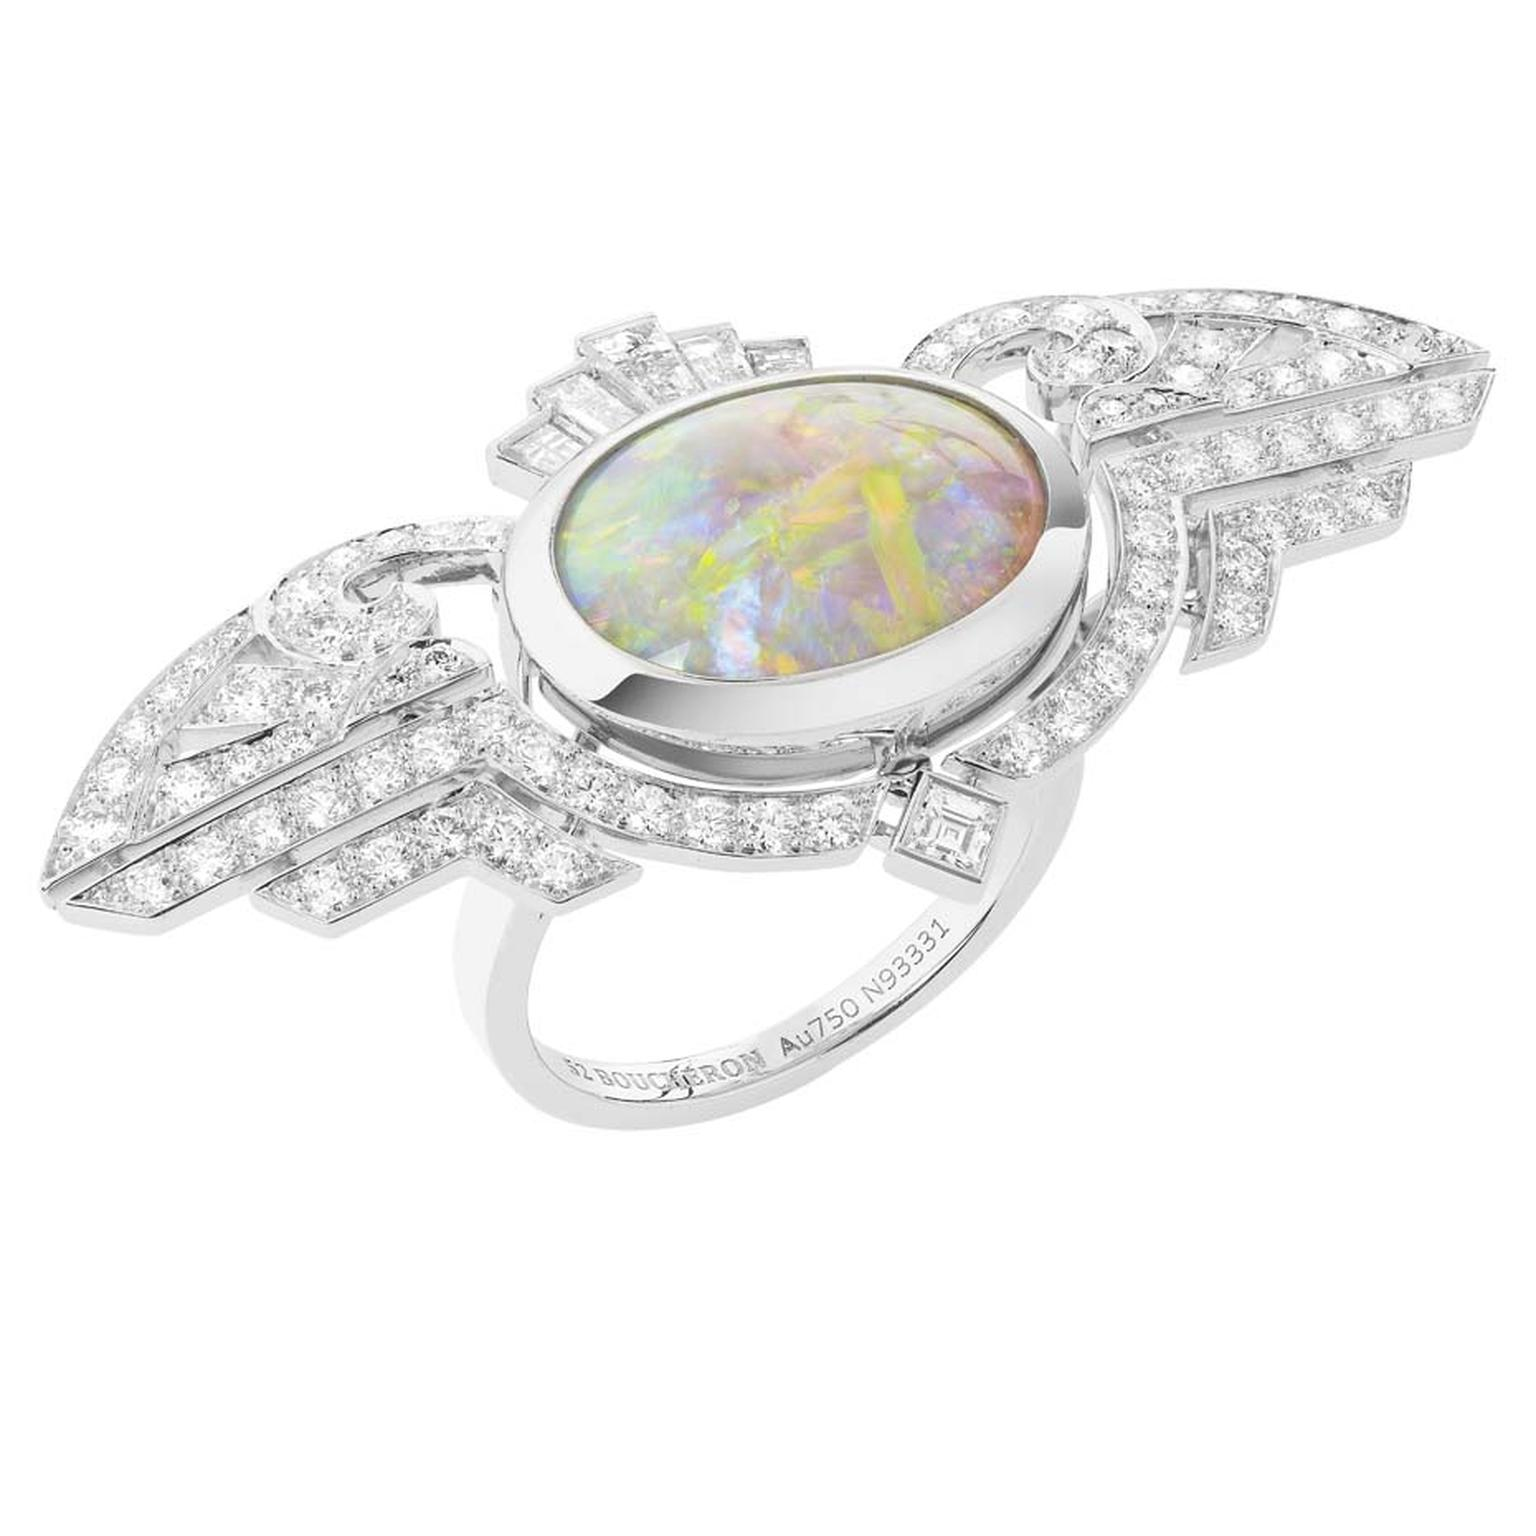 Boucheron Indian Palace opal and diamond ring, inspired by the coloured pools of water found within Indian Palaces.